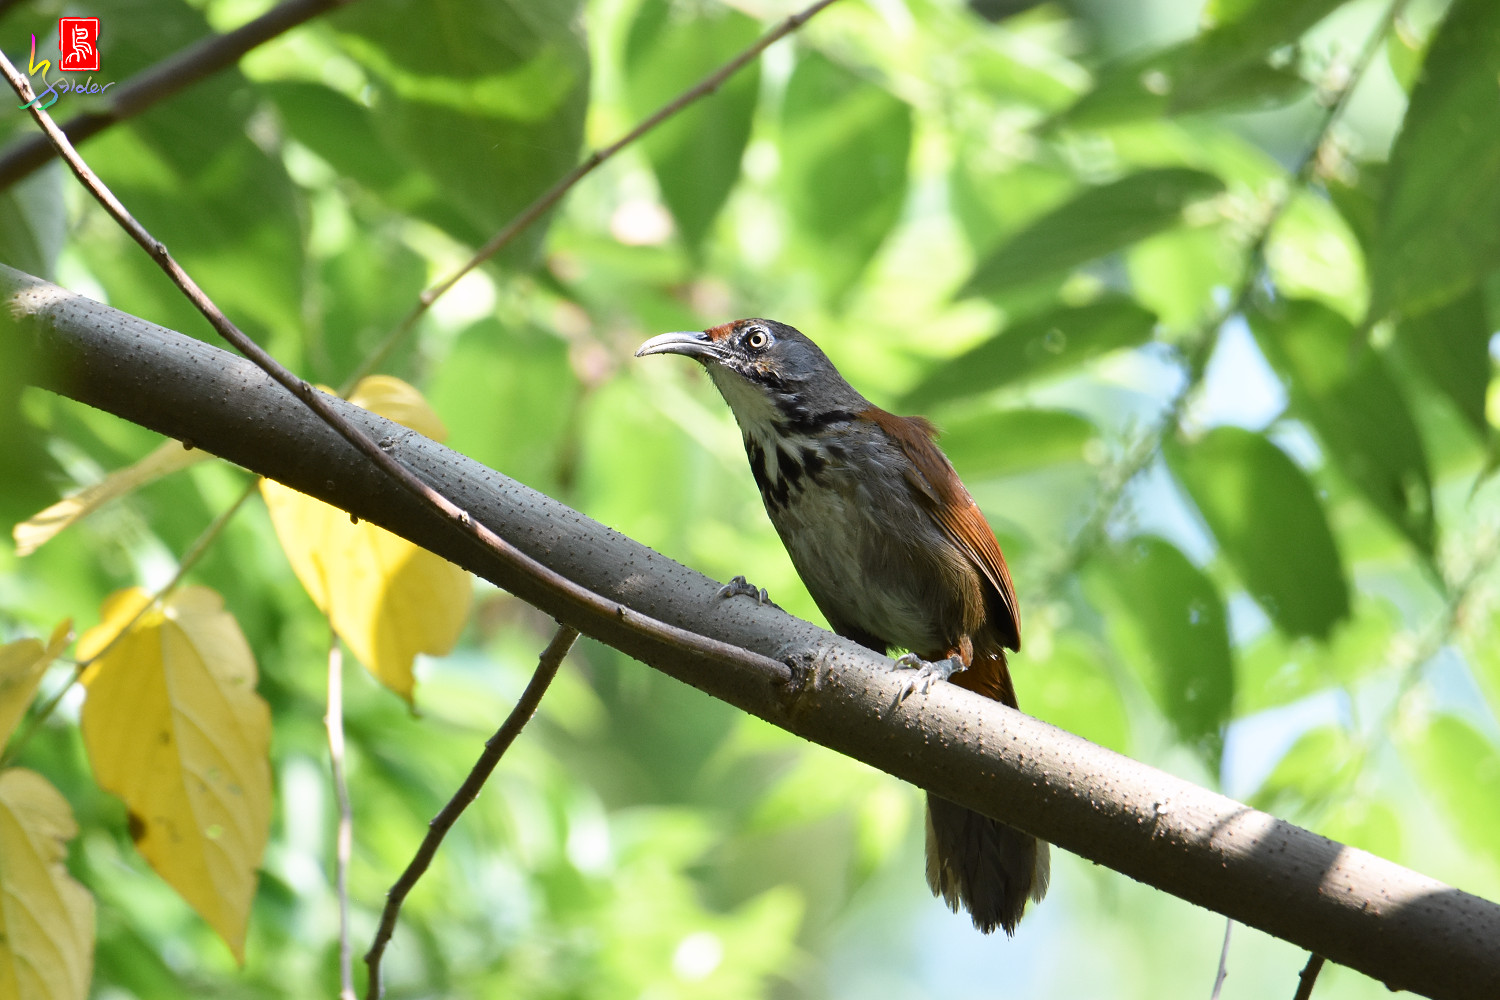 Rusty-cheeked_Scimitar_Babbler_8147